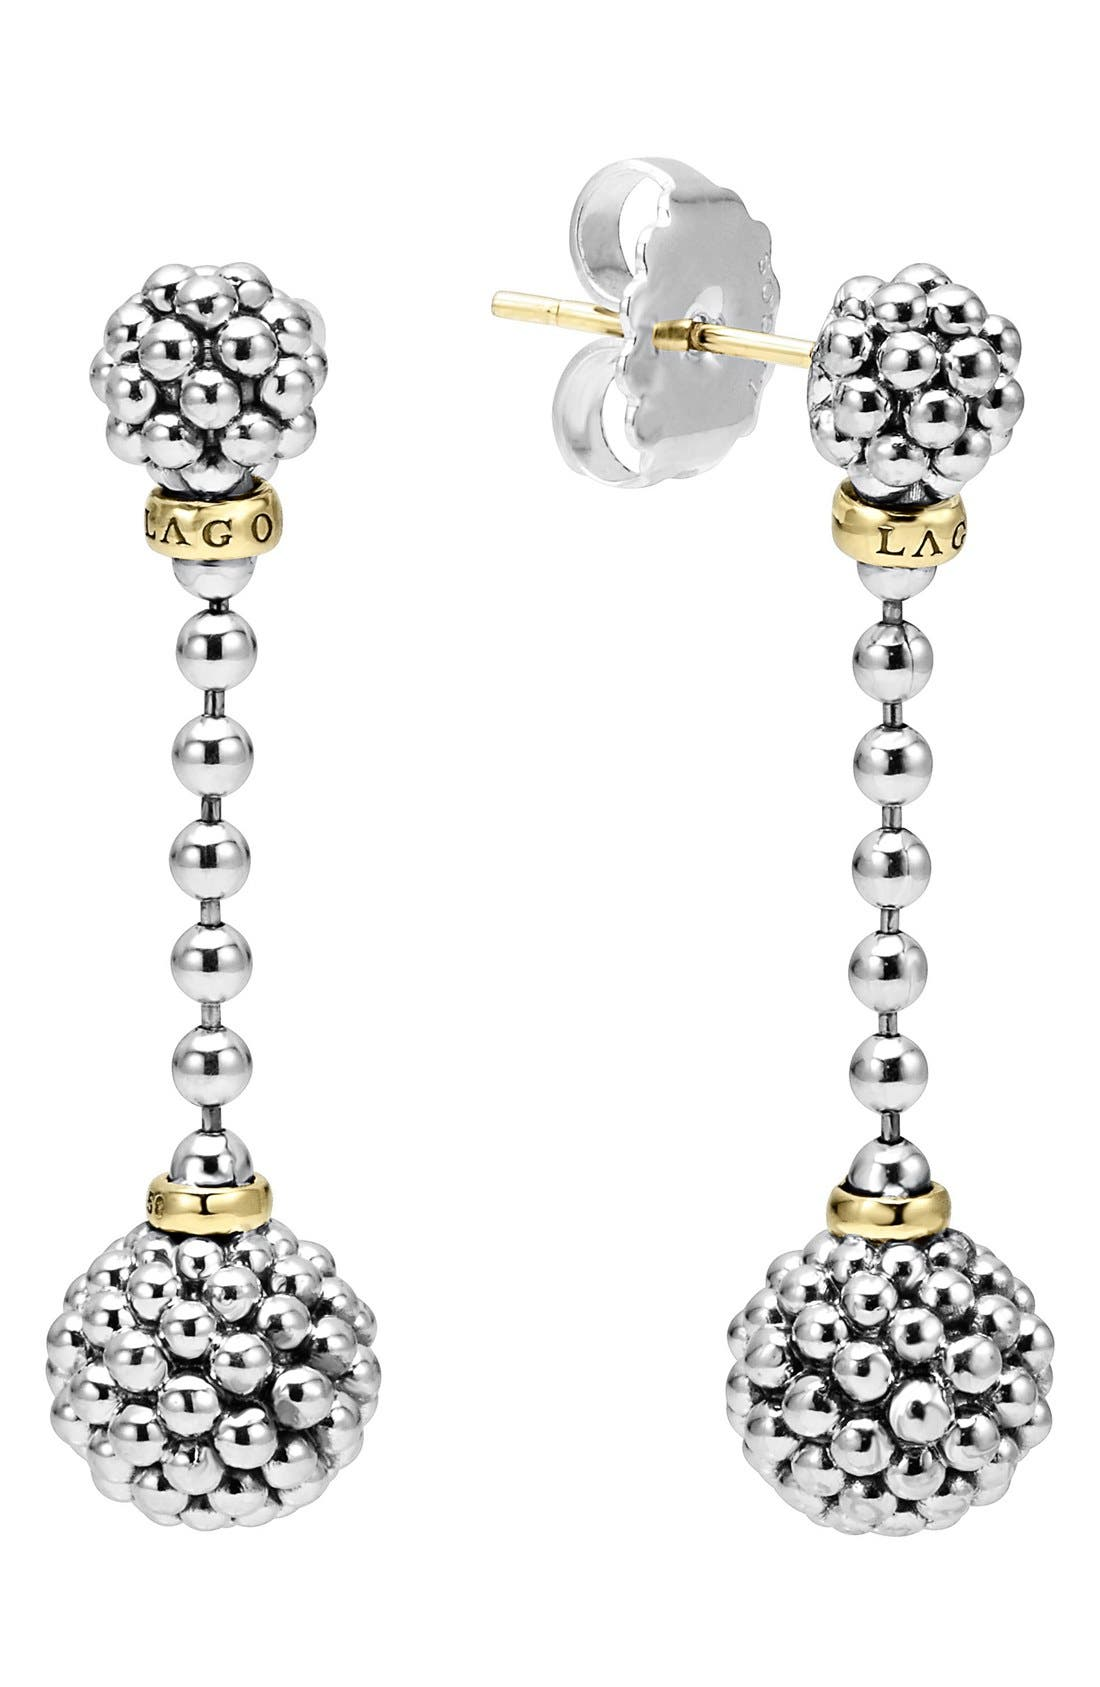 Caviar Lattice Ball Drop Earrings,                             Main thumbnail 1, color,                             040